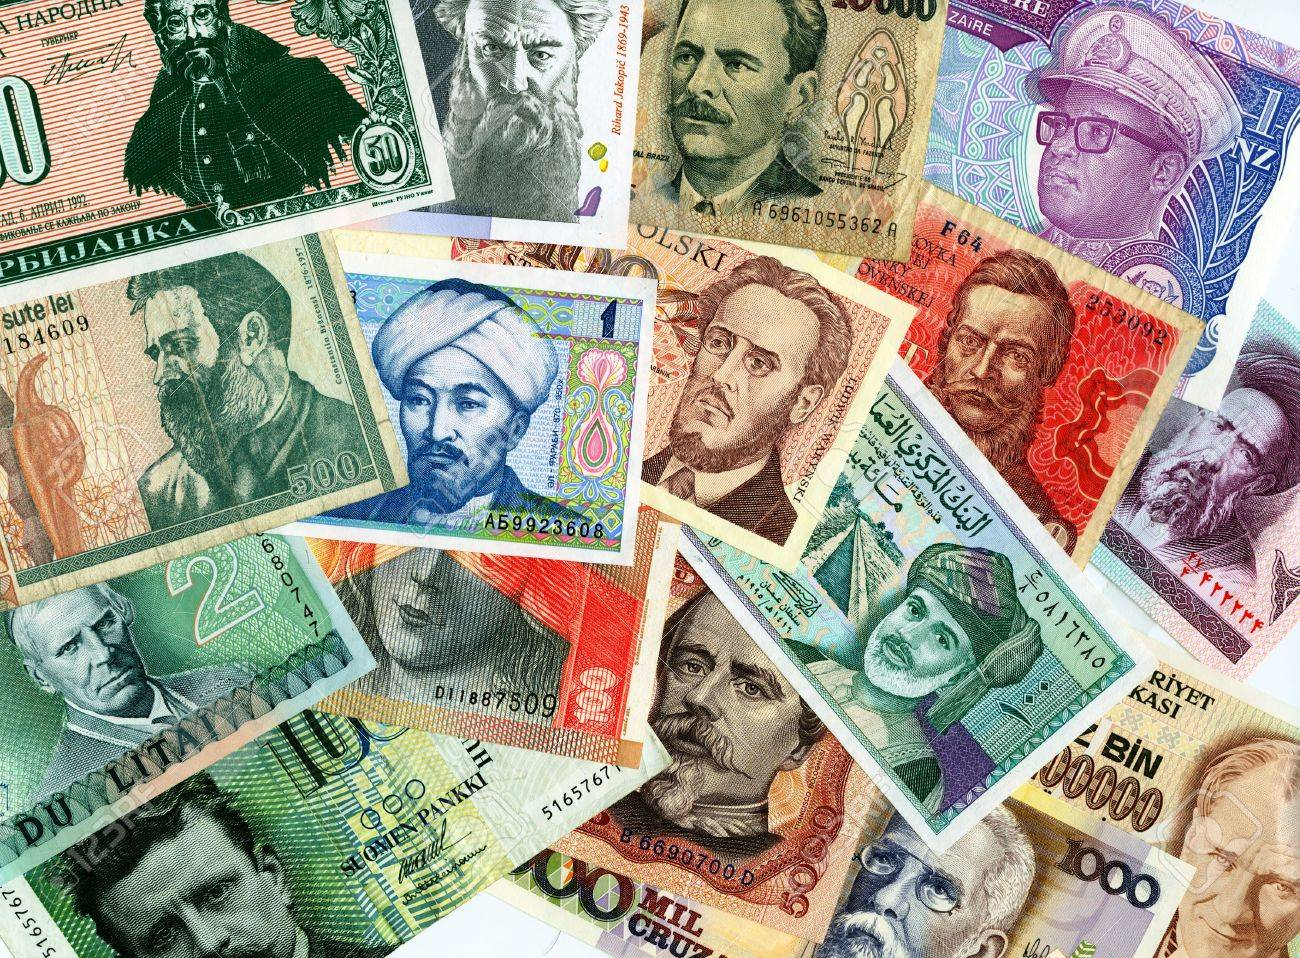 Currencies from around the world, paper banknotes